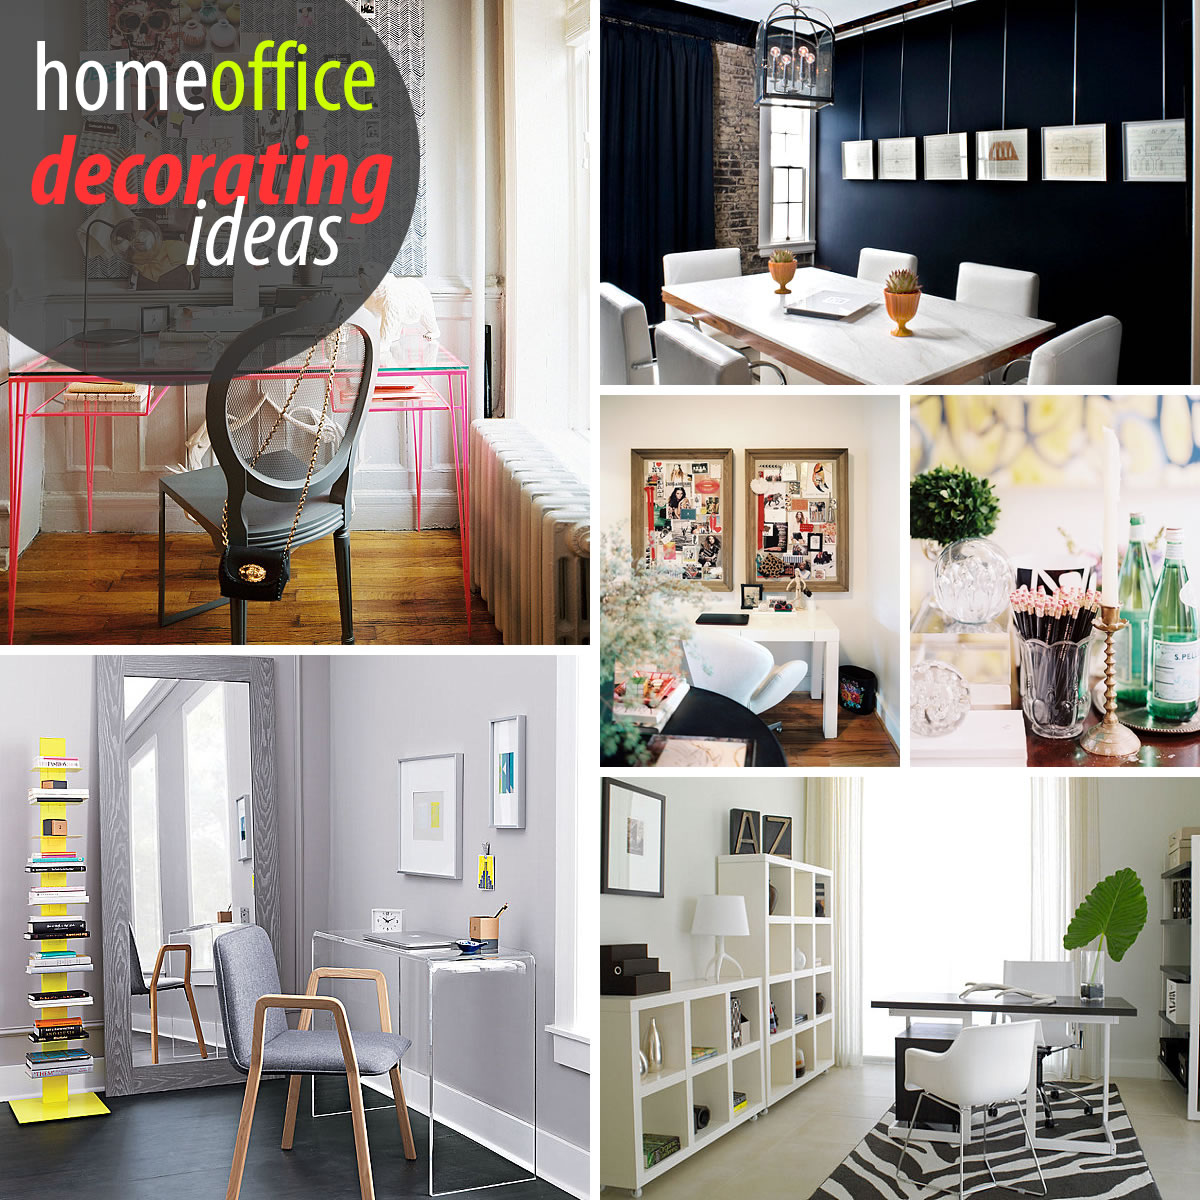 Creative home office decorating ideas for Home office wall decor ideas